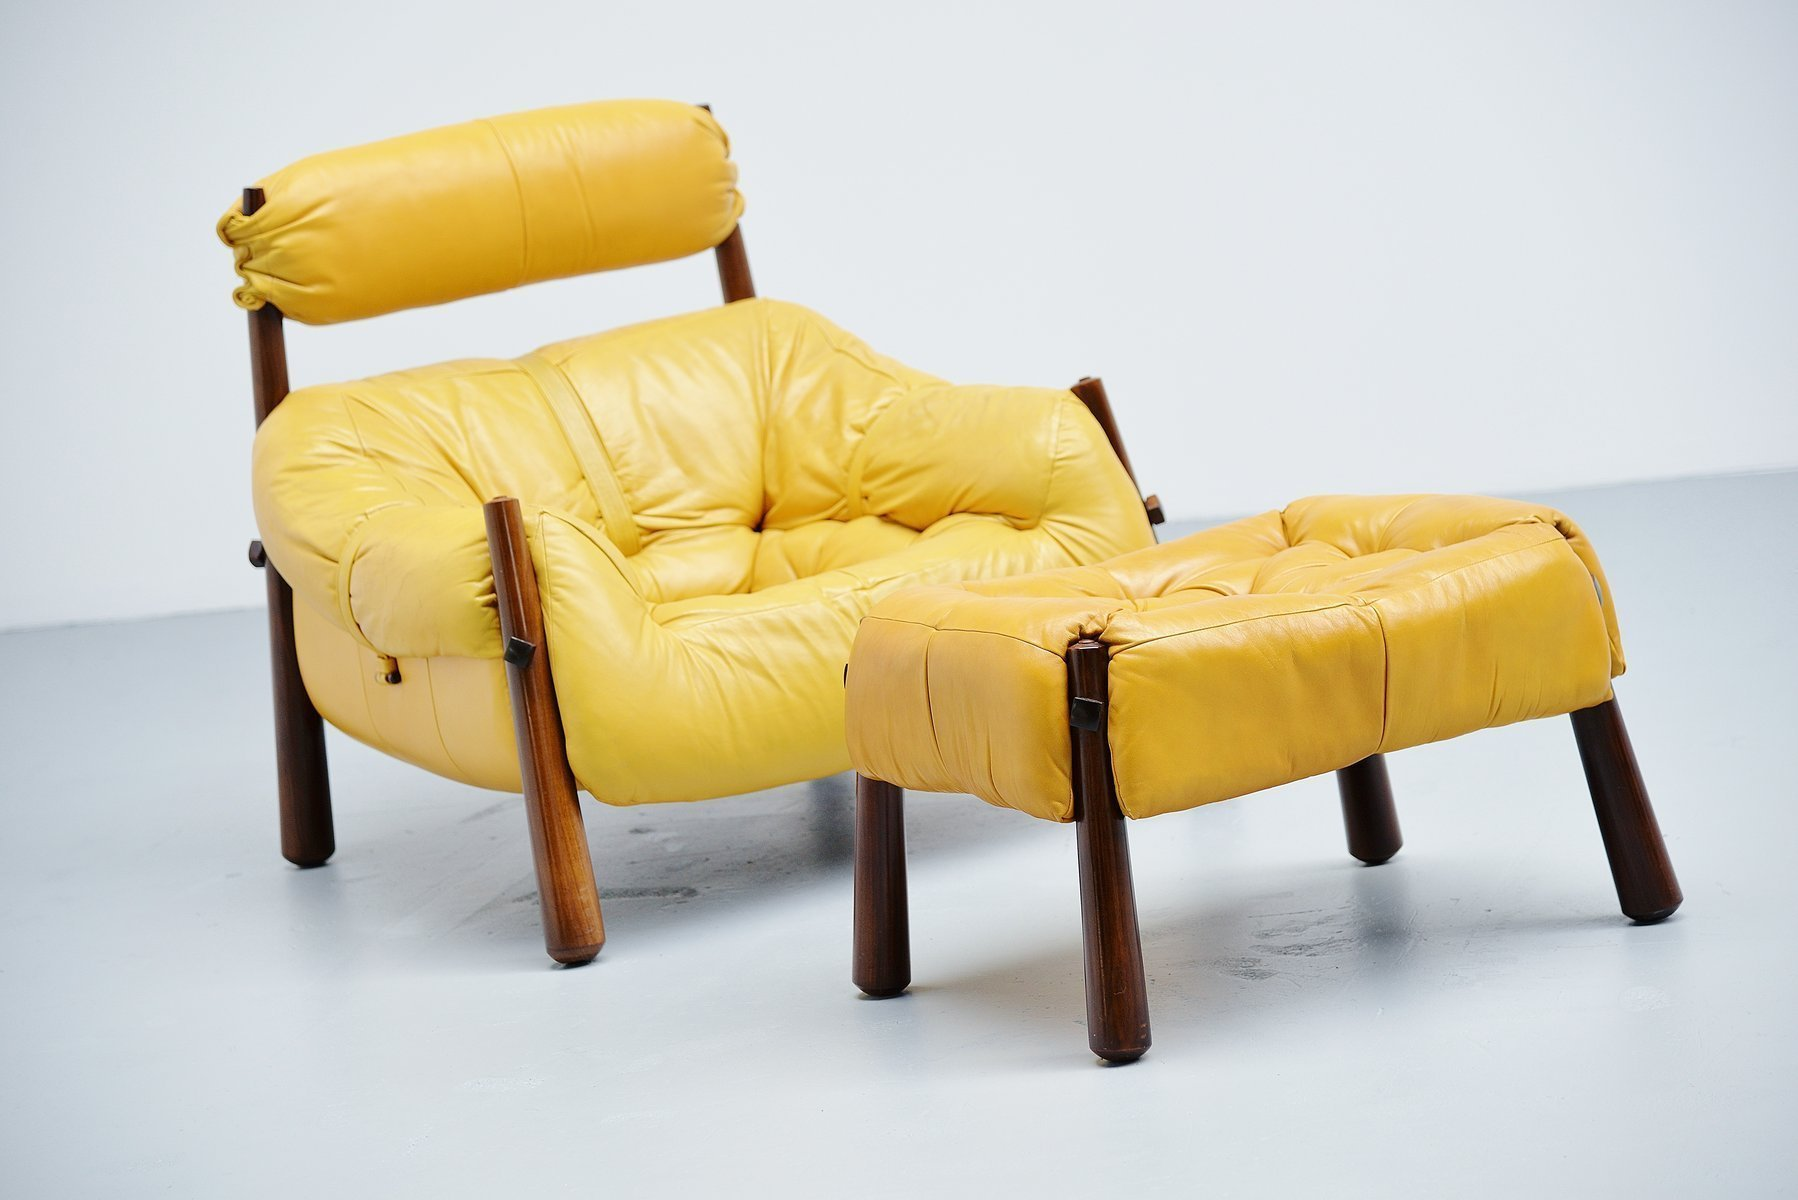 Percival Lafer Lounge Chair Brazil 1958